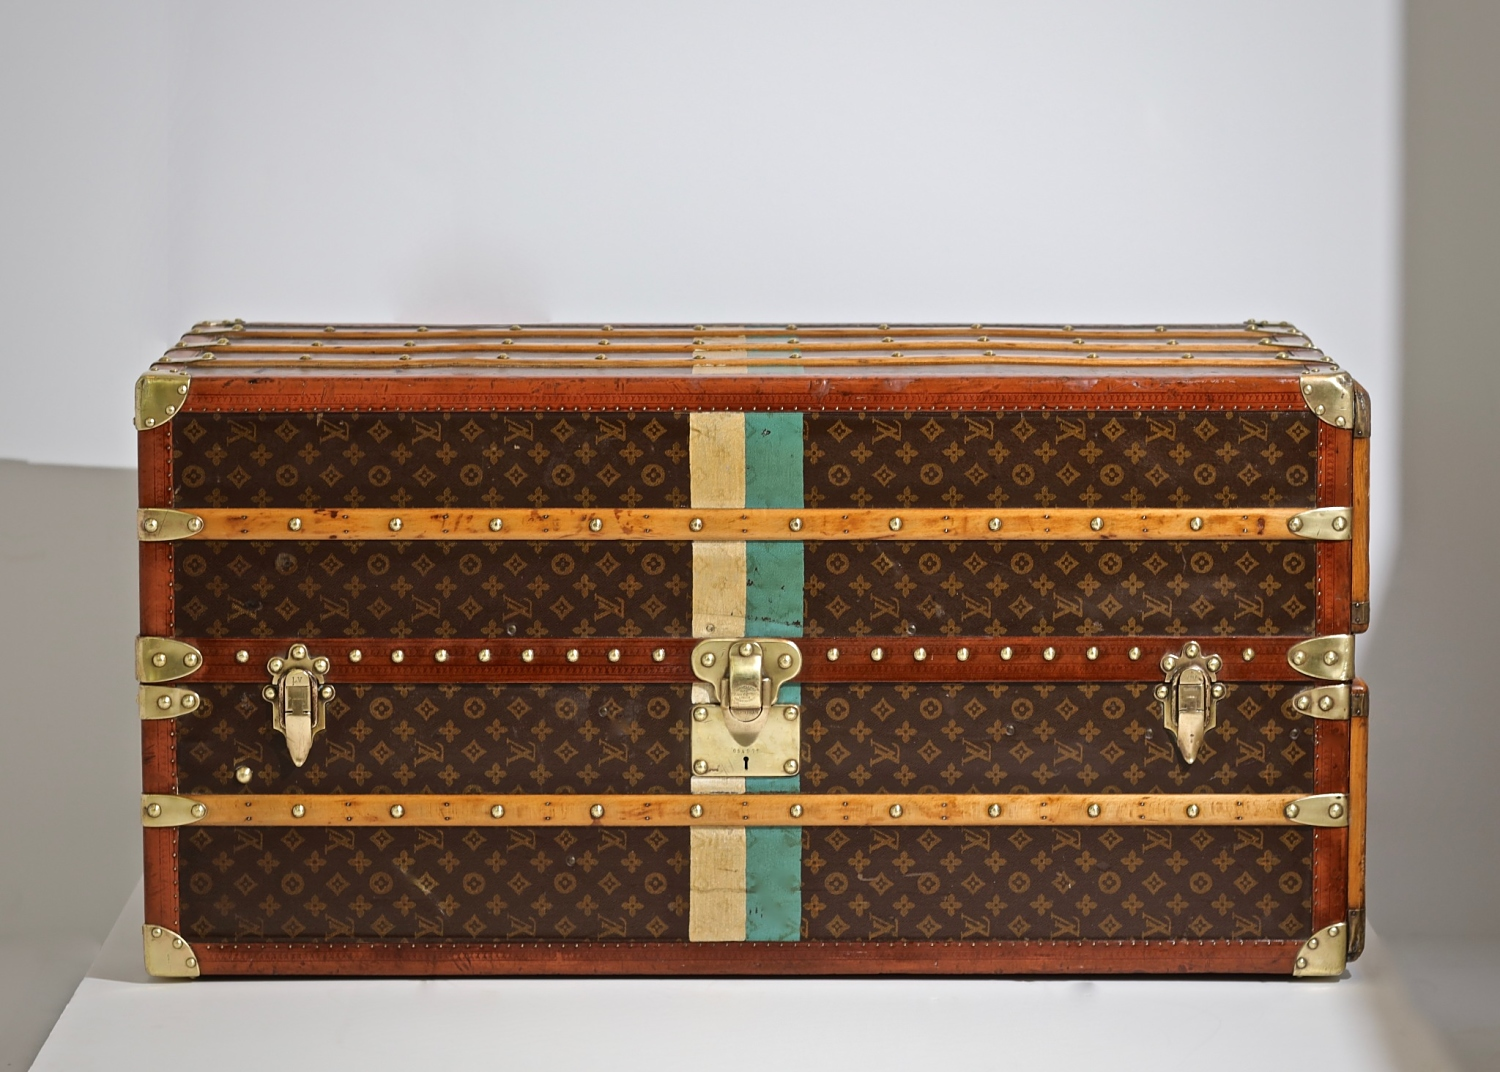 the-well-traveled-trunk-louis-vuitton-thumbnail-product-5668-1